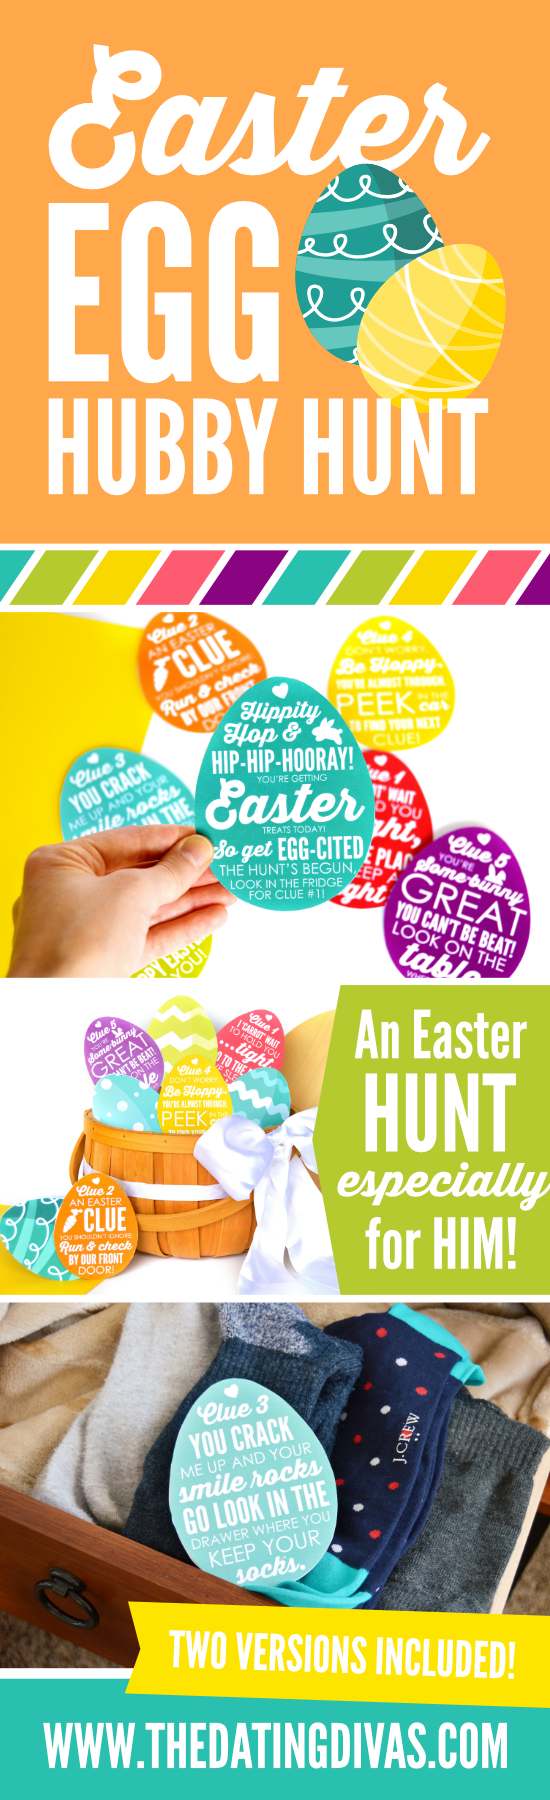 Easter Egg Hubby Hunt #easteregghuntideas #easterriddlesforadults #easterhuntideas #easteregghuntclues